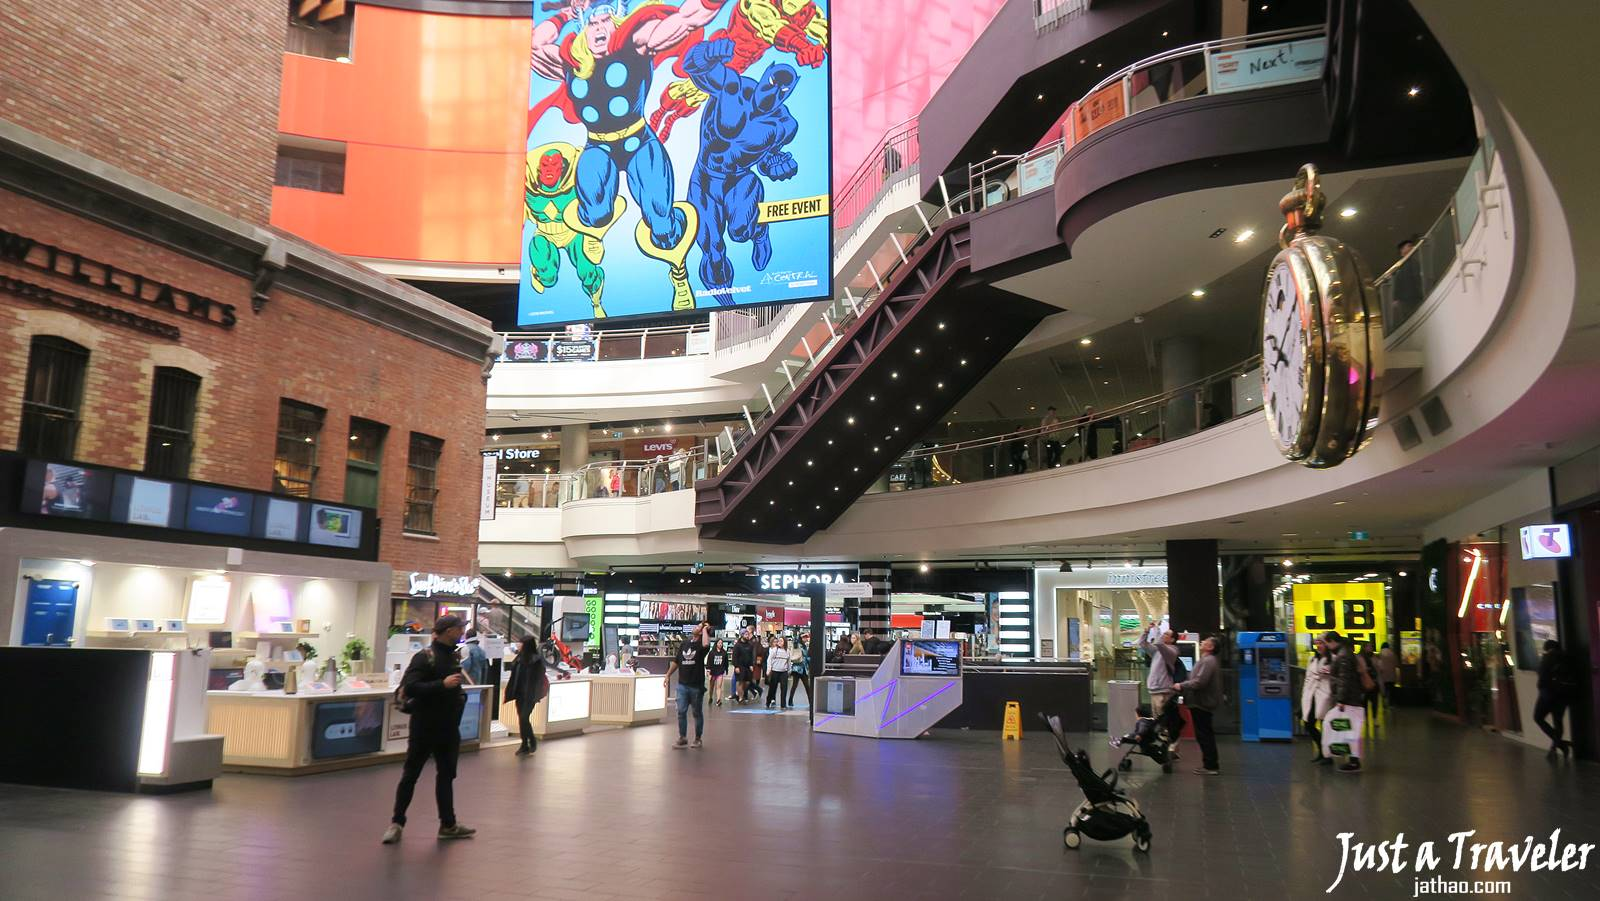 Melbourne-Melbourne Centre-CBD-Attraction-Recommendation-Map-Itinerary-Tourism-Independent Travel-Travel Blog-Must visit-Must See